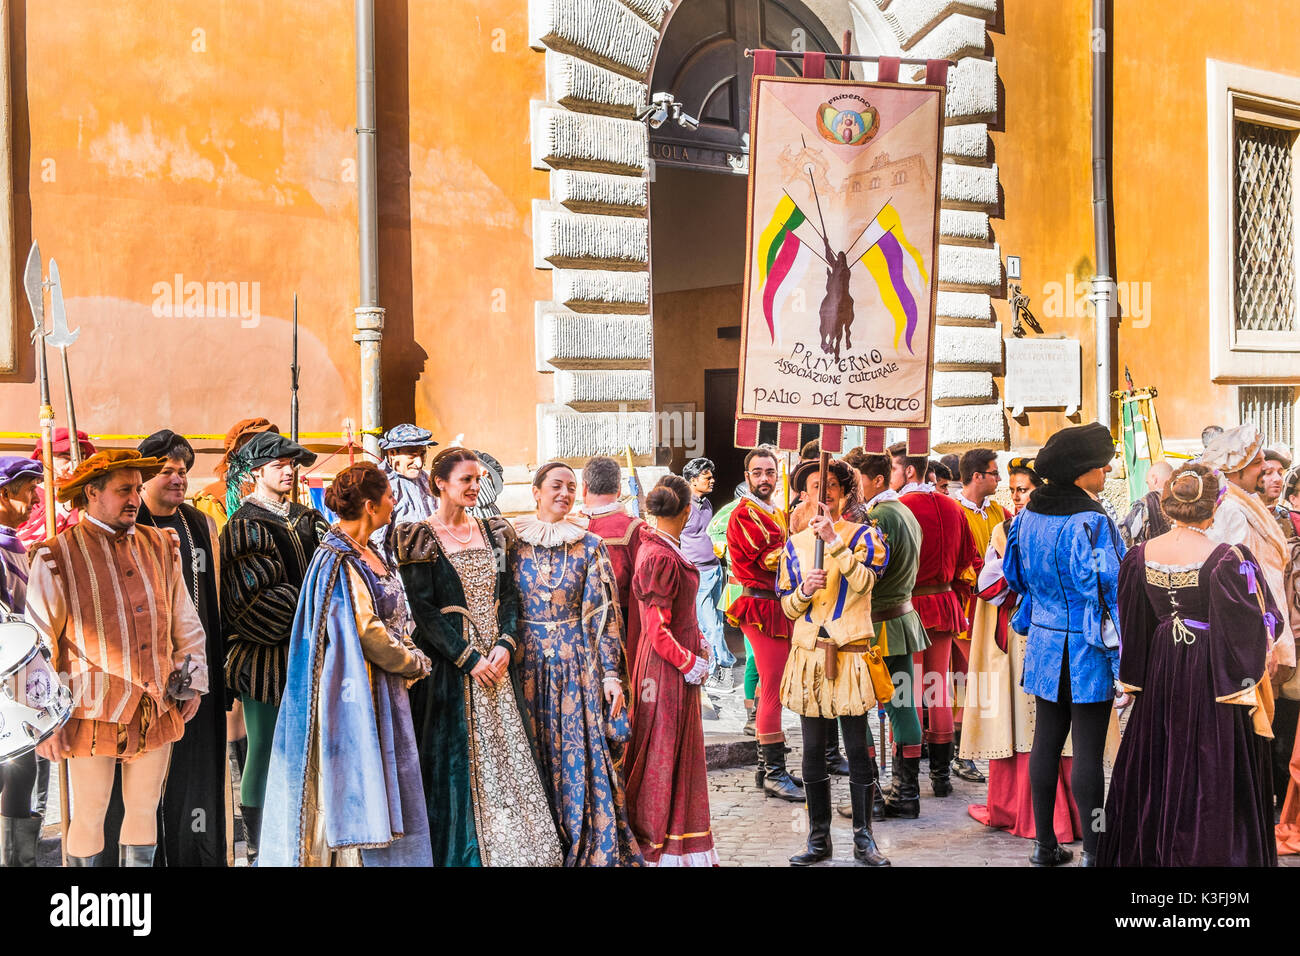 members of associazione culturale priverno lining up for a parade in historic costumes - Stock Image